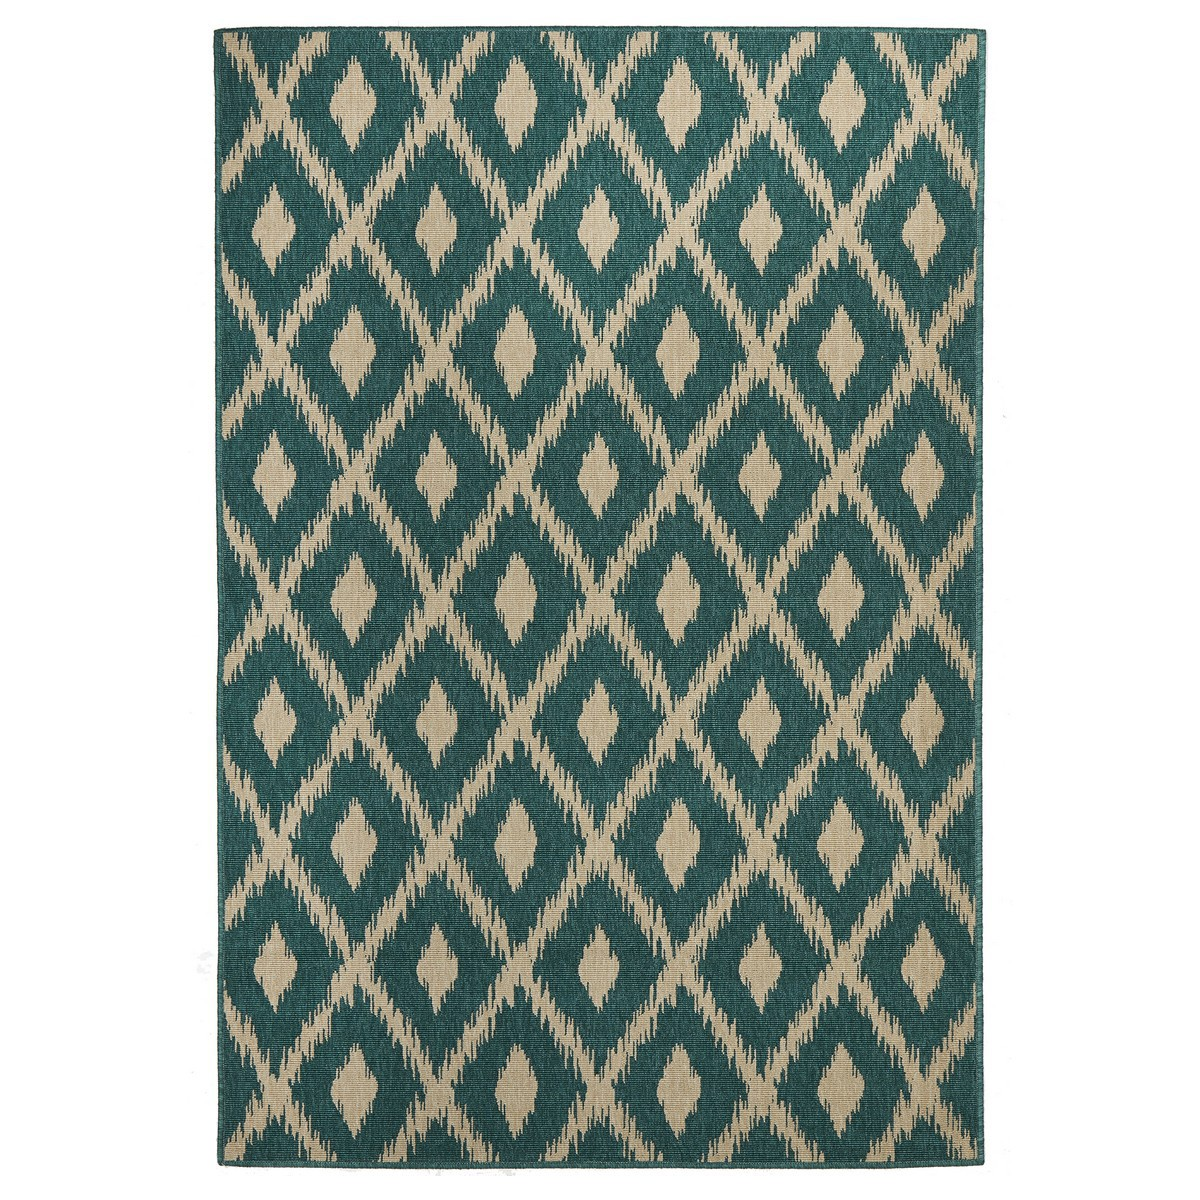 Alfresco Avoca Trible Egyptian Made Outdoor Rug, 160x110cm, Turquoise